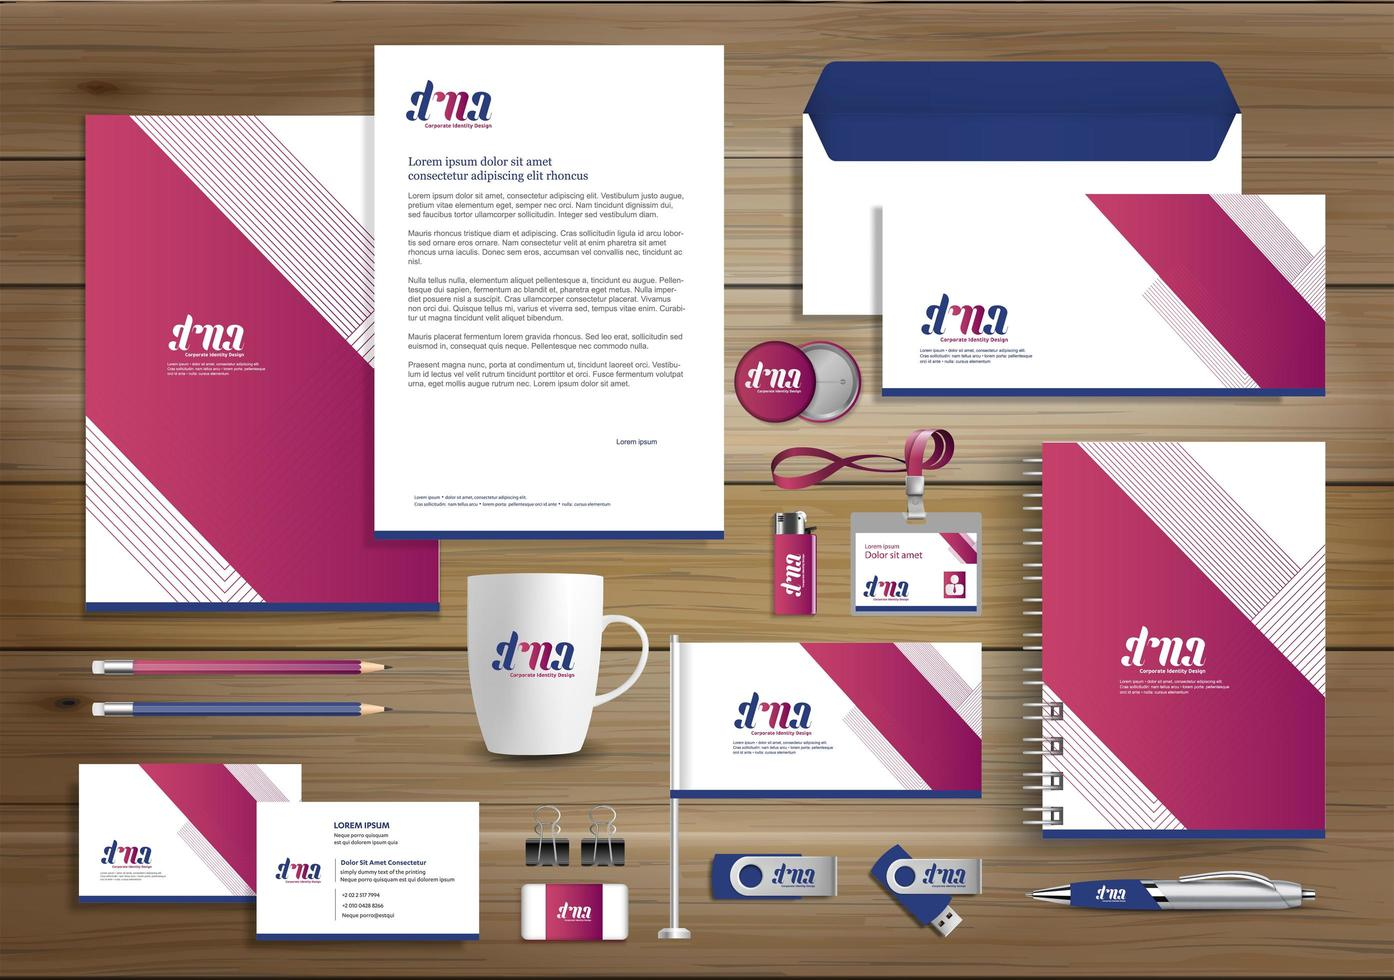 Pink Angle Design Identity and Promotional Items vector